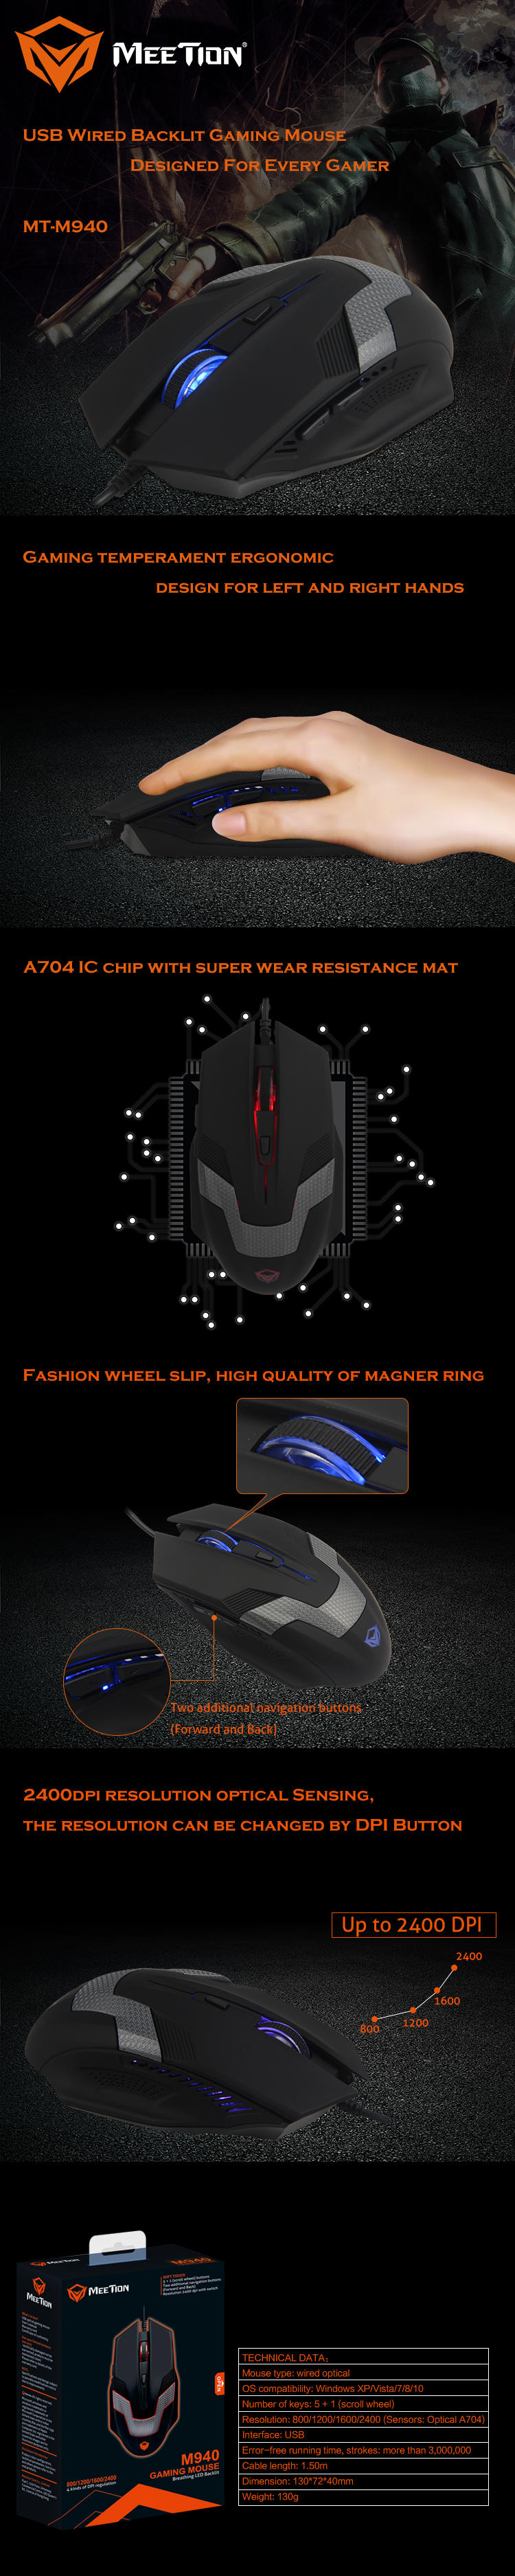 Meetion gaming mouse retailer-1